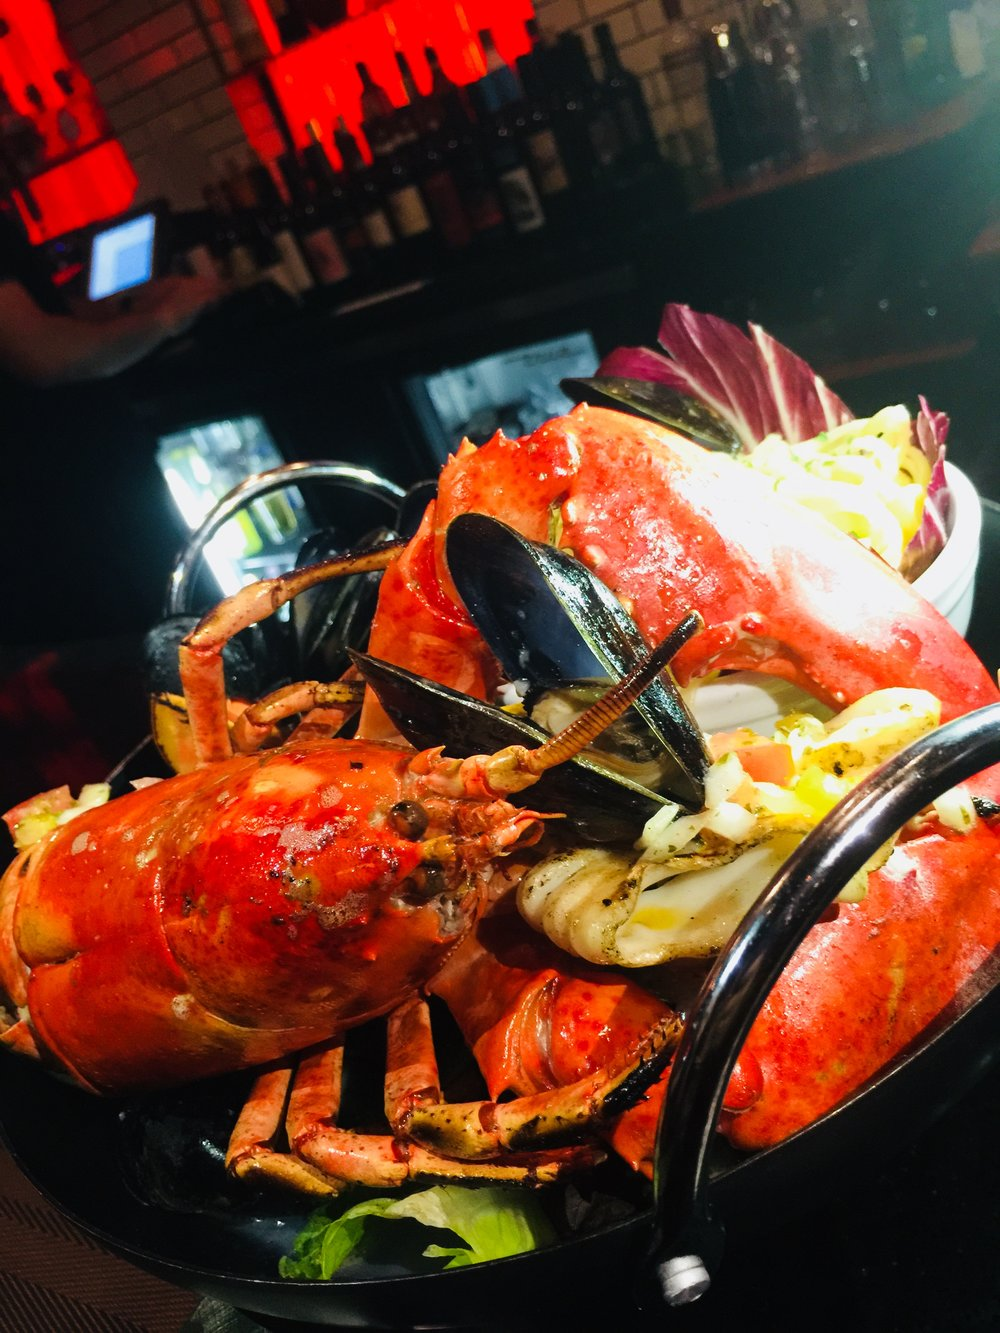 Grilled lobster (1 lb) soft shell , with grilled calamari, sautéed mussles, side spaghetti garlic oil and peperoncino